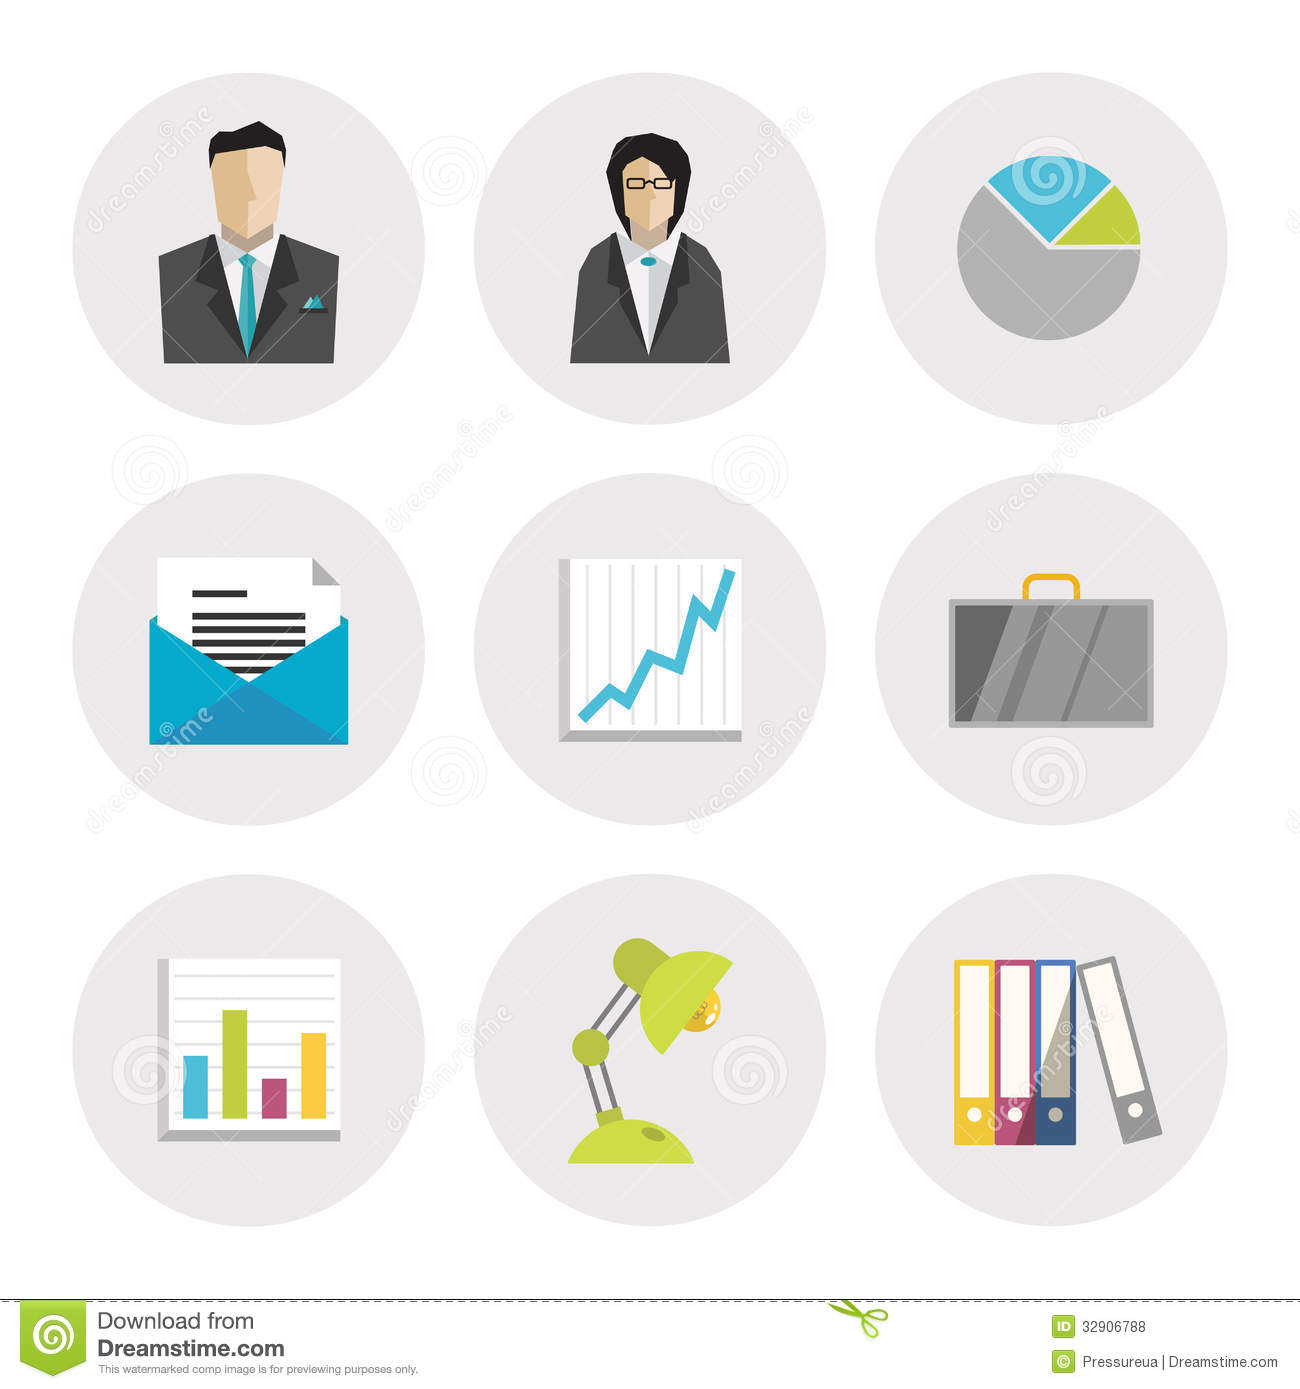 11 Business Icons Flat Images